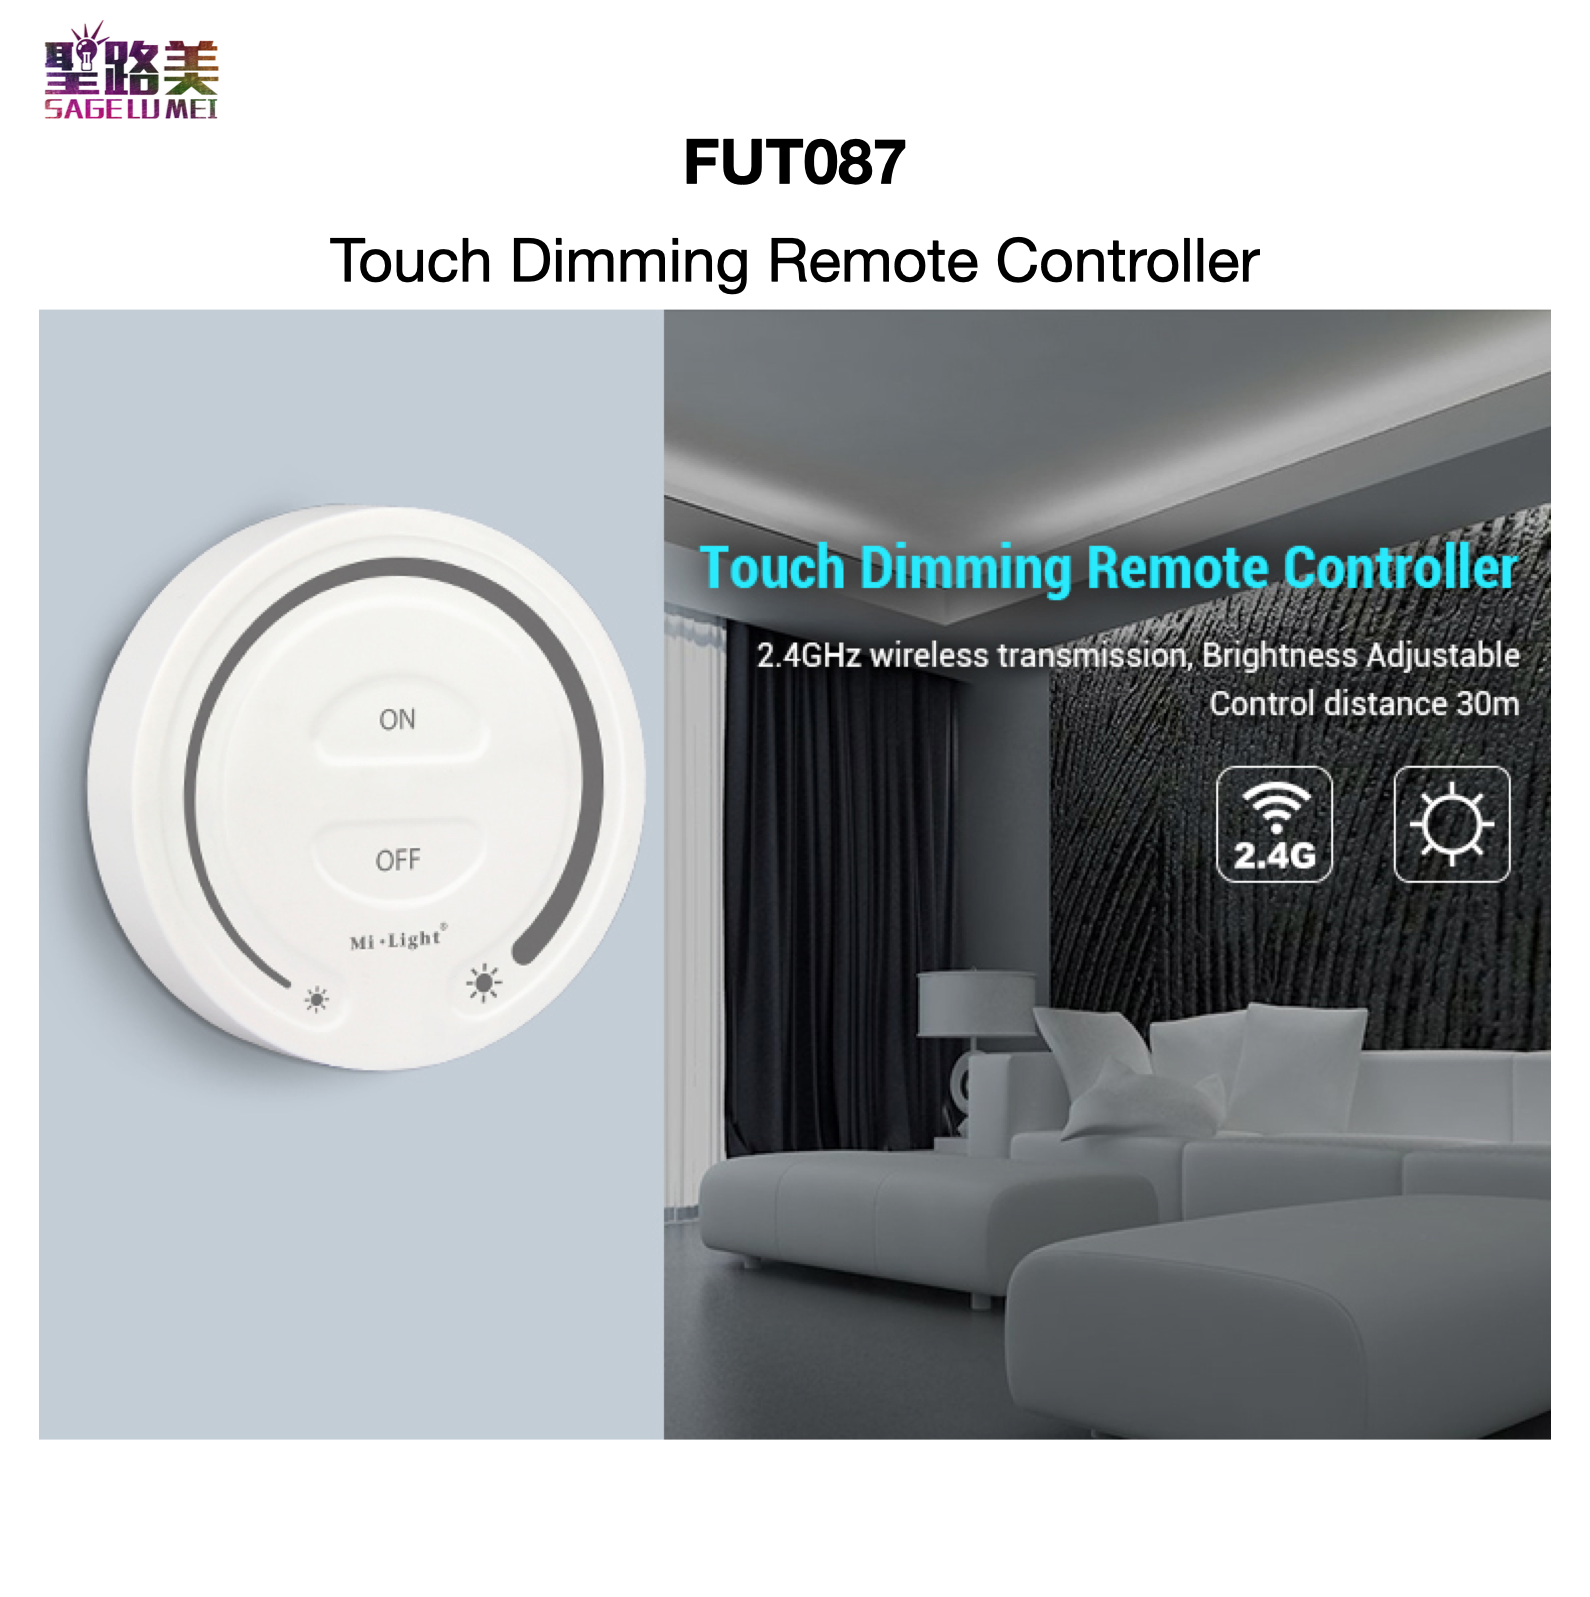 FUT087 Touch Dimming Remote Controller 2.4GHz Wireless Transmission Brightness Adjustable Control Distance 30m MiBOXER Mi-Light